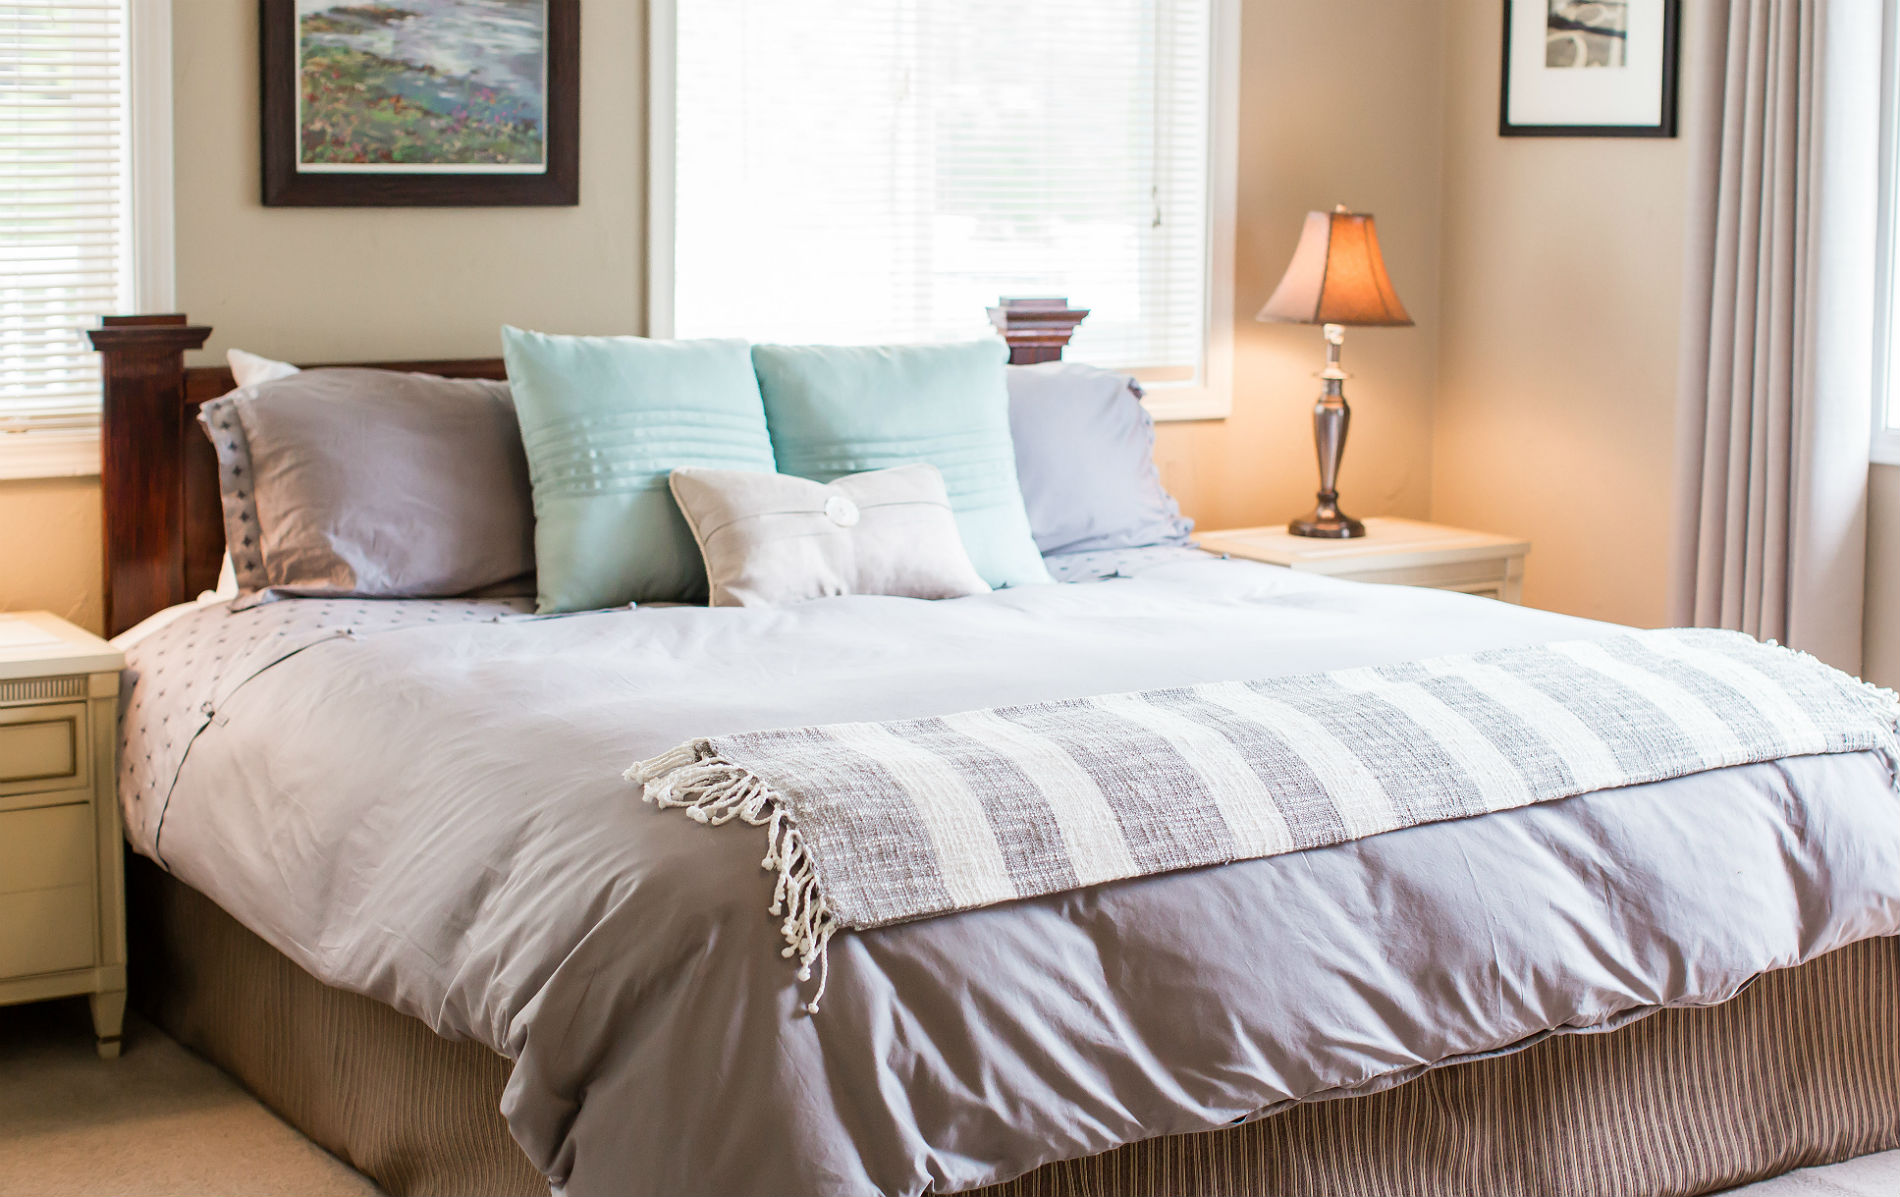 River Suite bed with gray and light blue bedding